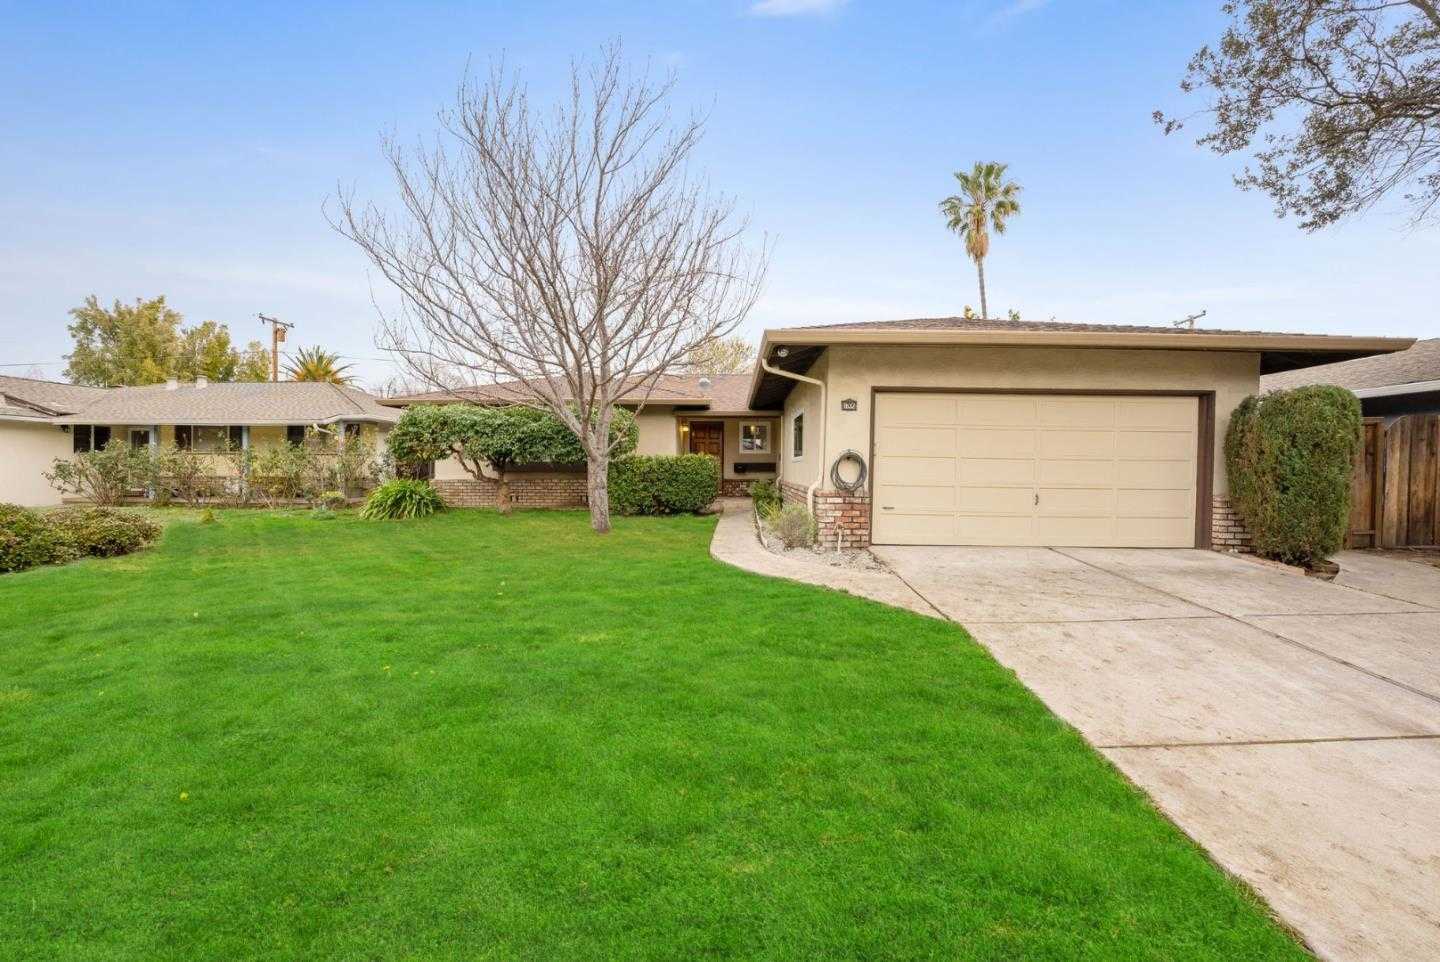 $1,888,888 - 3Br/3Ba -  for Sale in Sunnyvale